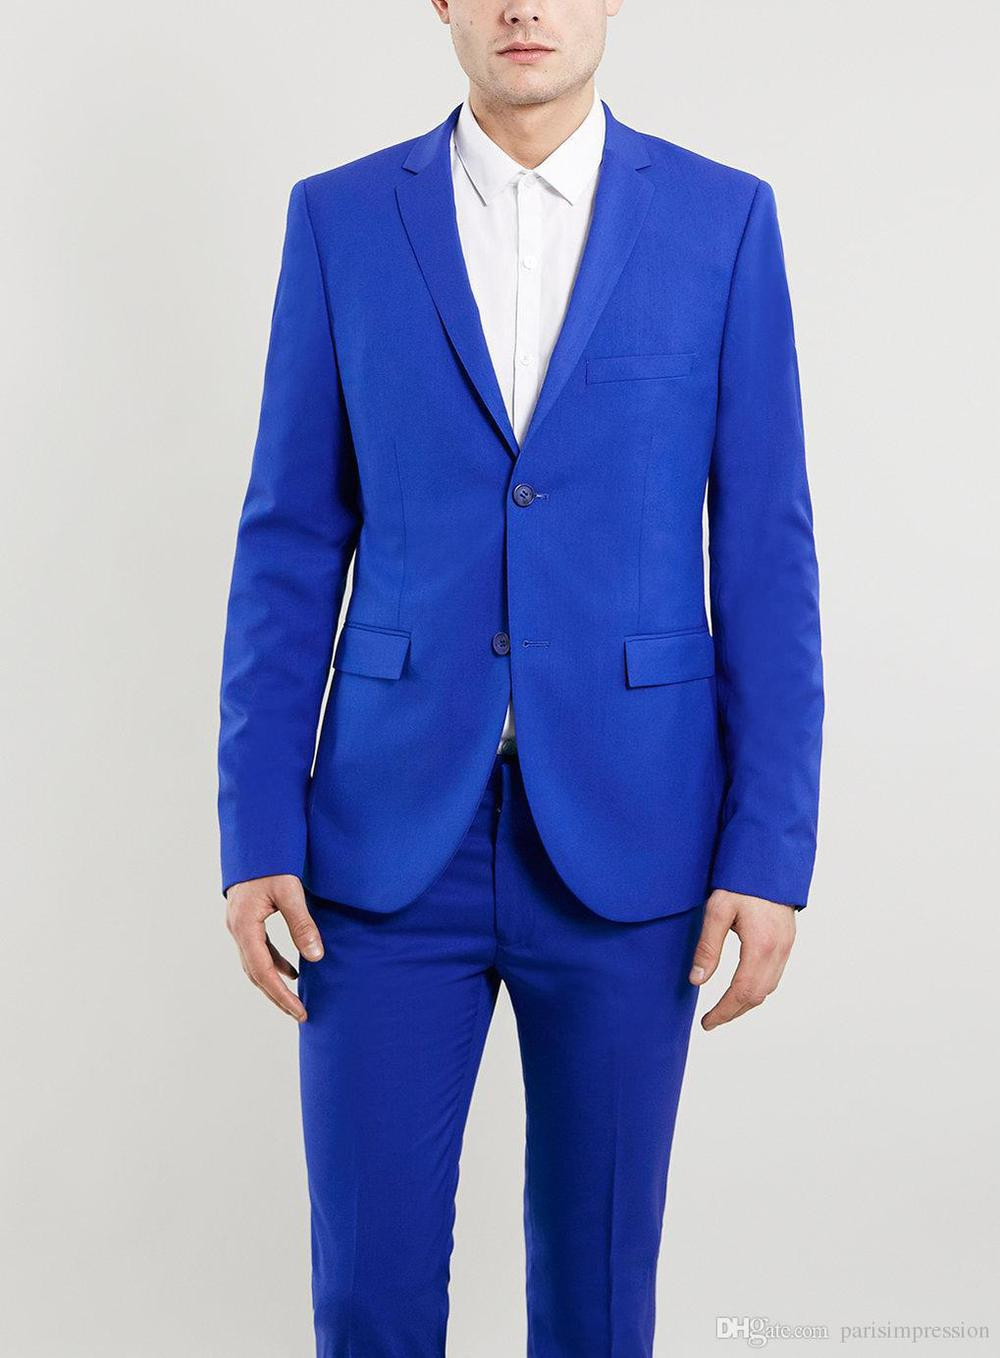 New Arrival grooms suit blue tuxedos for men wedding suits for men ...